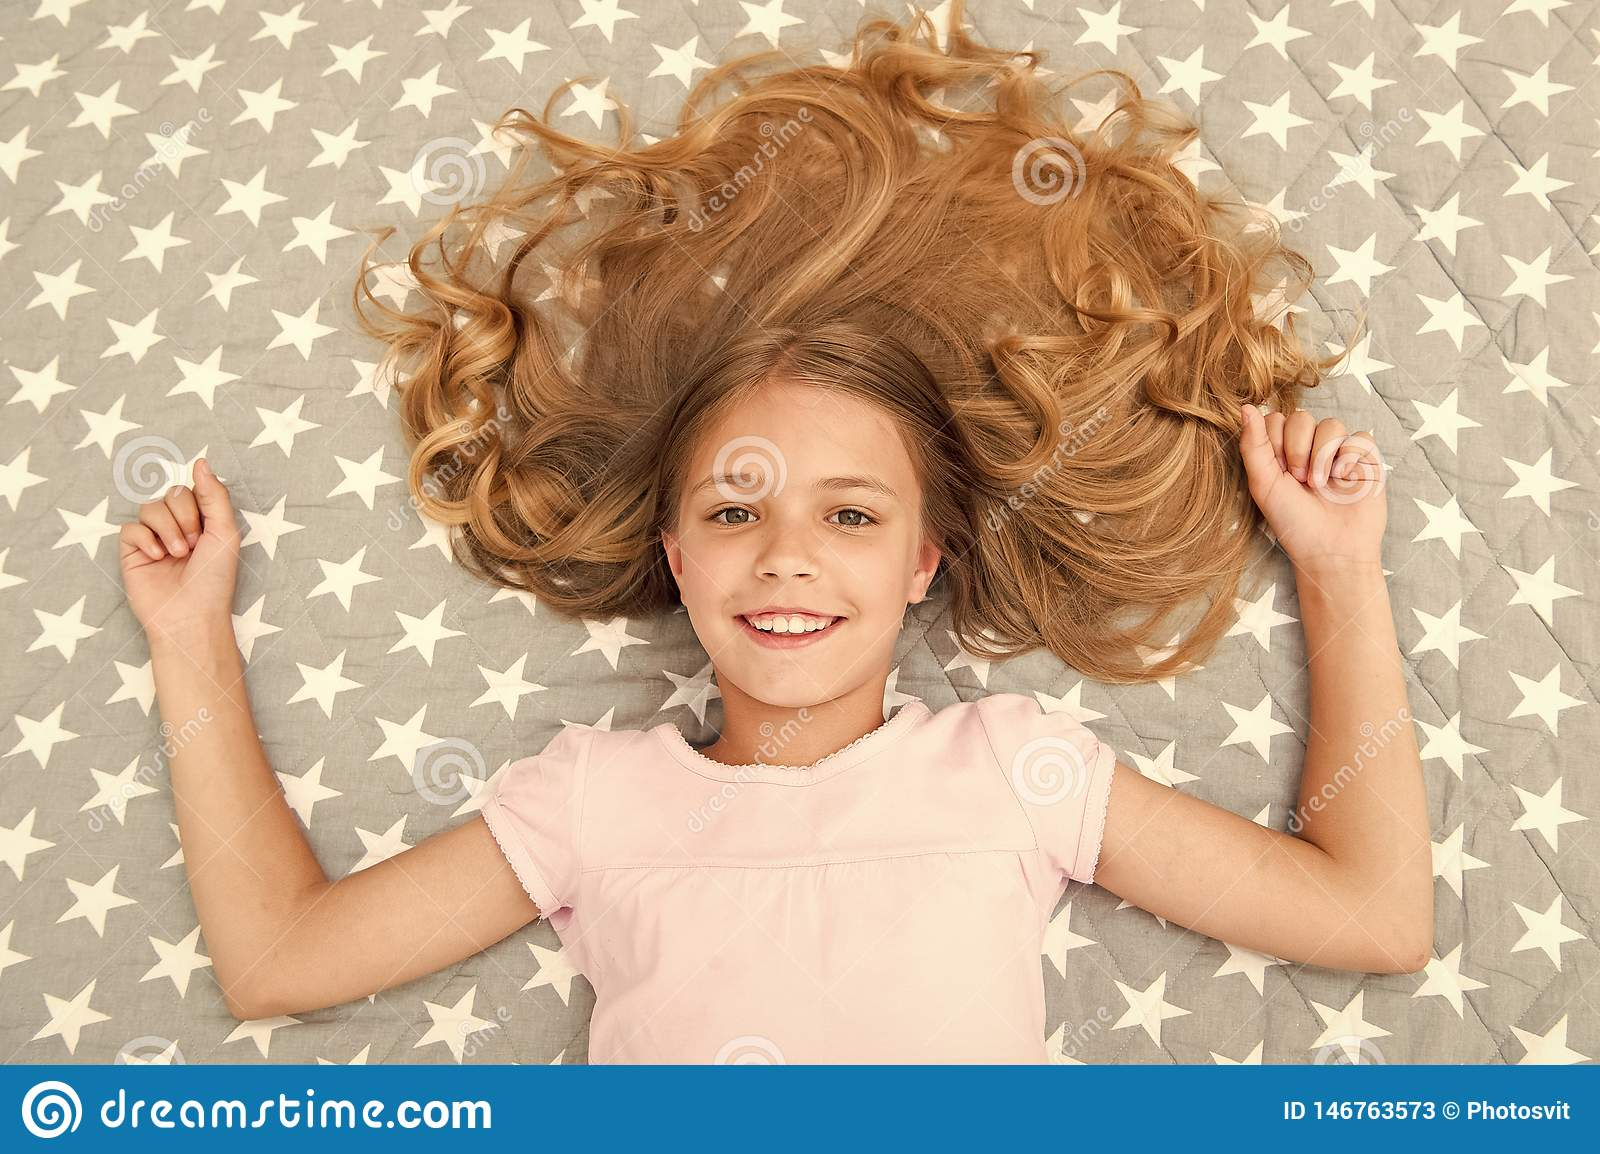 Natural Curls Treat And Care Girl Child With Long Curly Hair Lay On Bed Top View Child Perfect Curly Hairstyle Looks Stock Image Image Of Healthy Interior 146763573